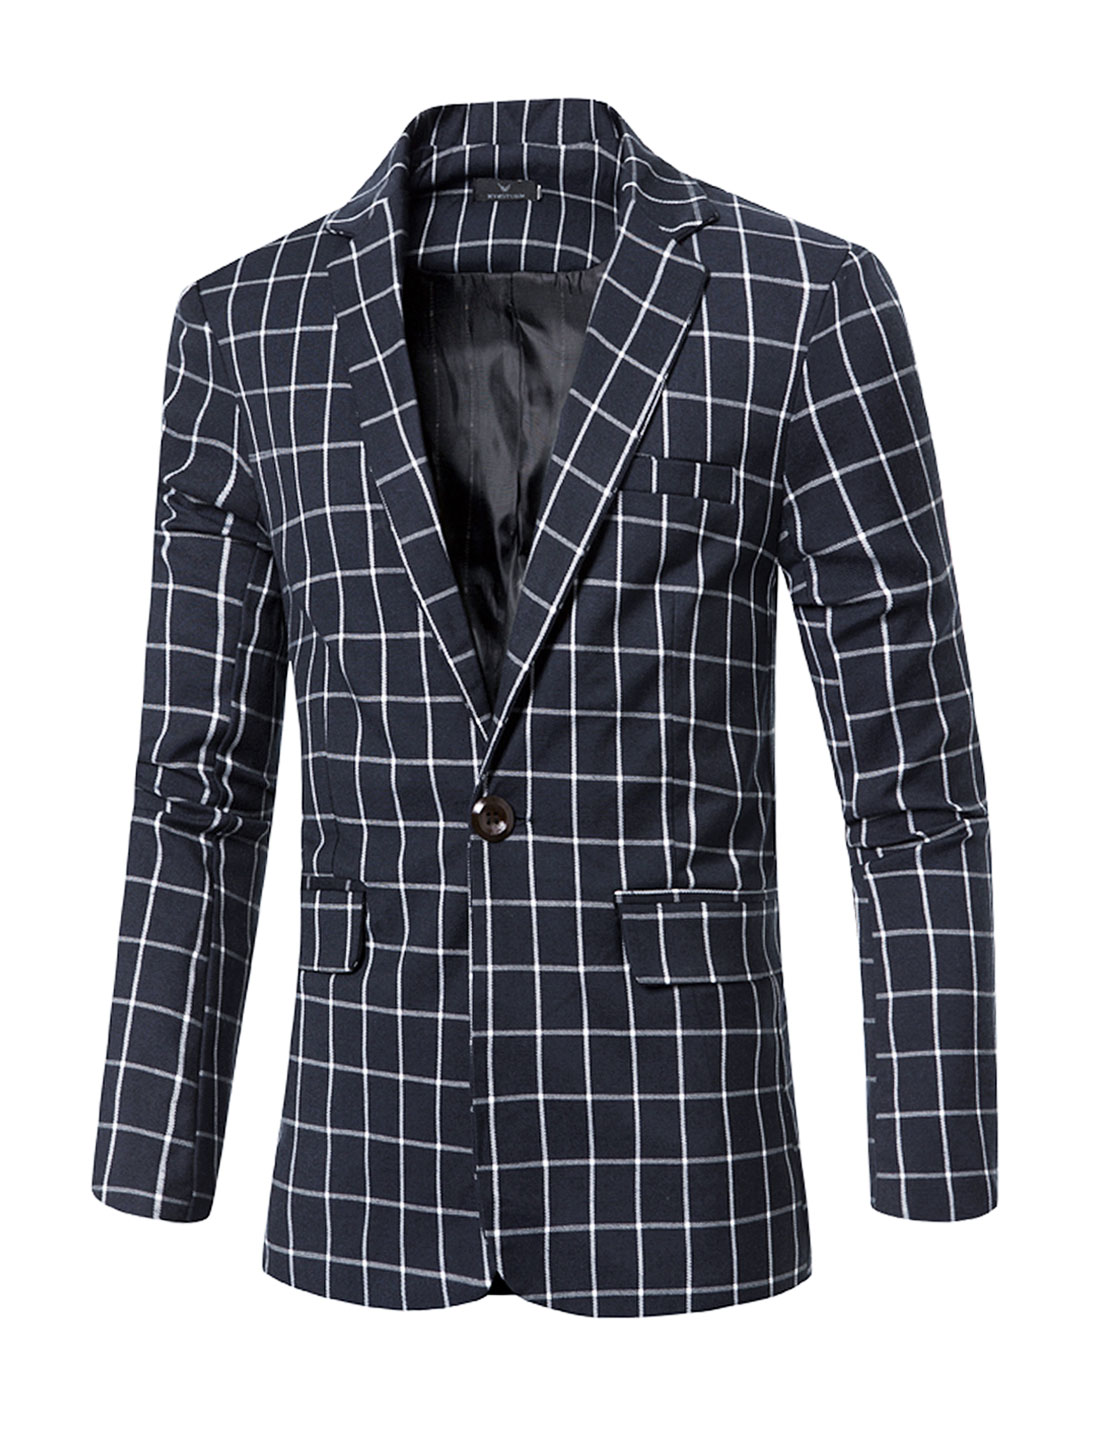 Men's Notched Lapel Checks One-Button Pockets Blazer Blue S